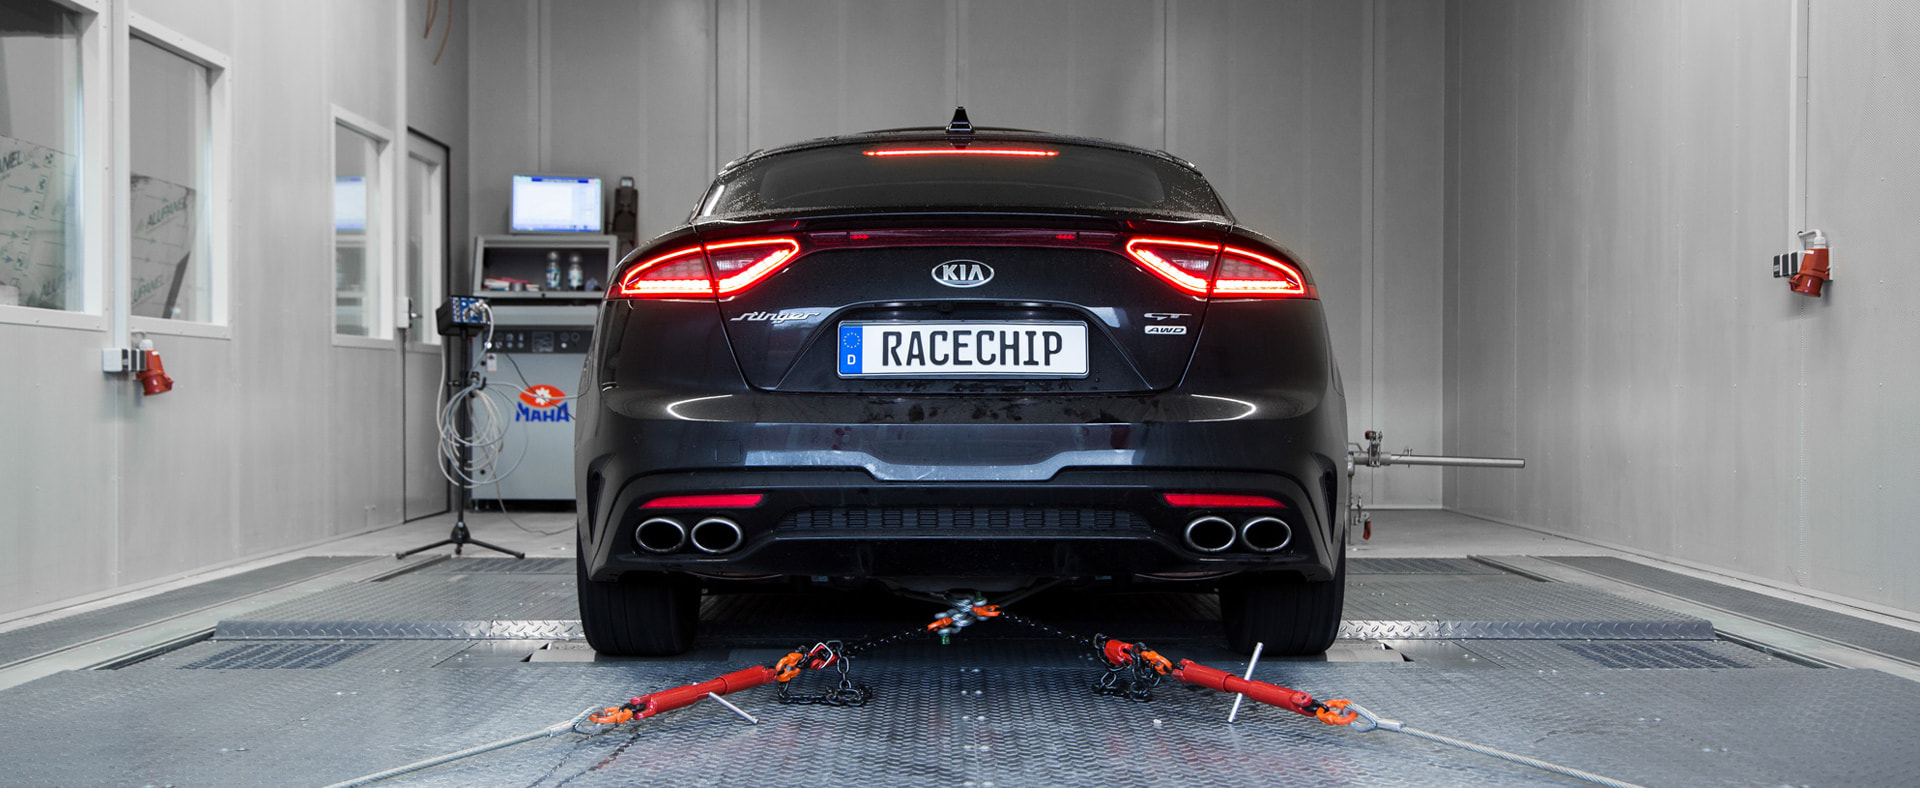 racechip unleashes true potential of the kia stinger gt. Black Bedroom Furniture Sets. Home Design Ideas